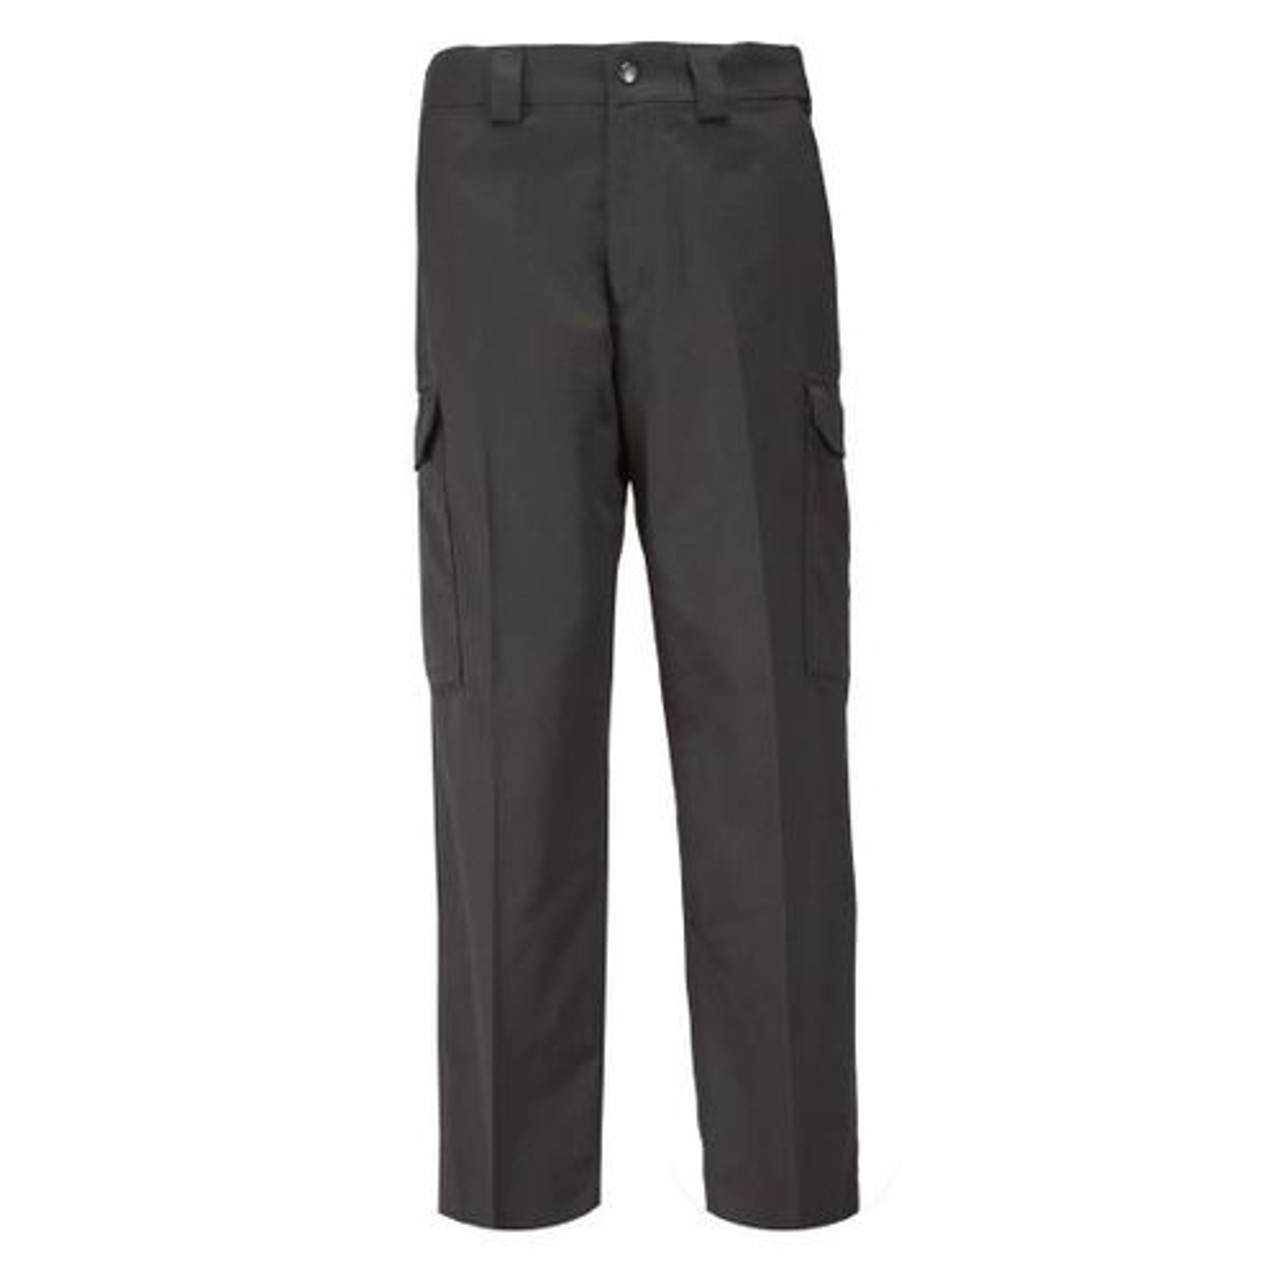 5.11 Tactical 74326 Twill PDU Cargo Class-B Uniform Pants, Classic/Straight Fit, Adjustable Waist, Ployester/Cotton, Prym Snaps, YKK Zippers, available in Black, Brown, Midnight Navy, or Sheriff's Green